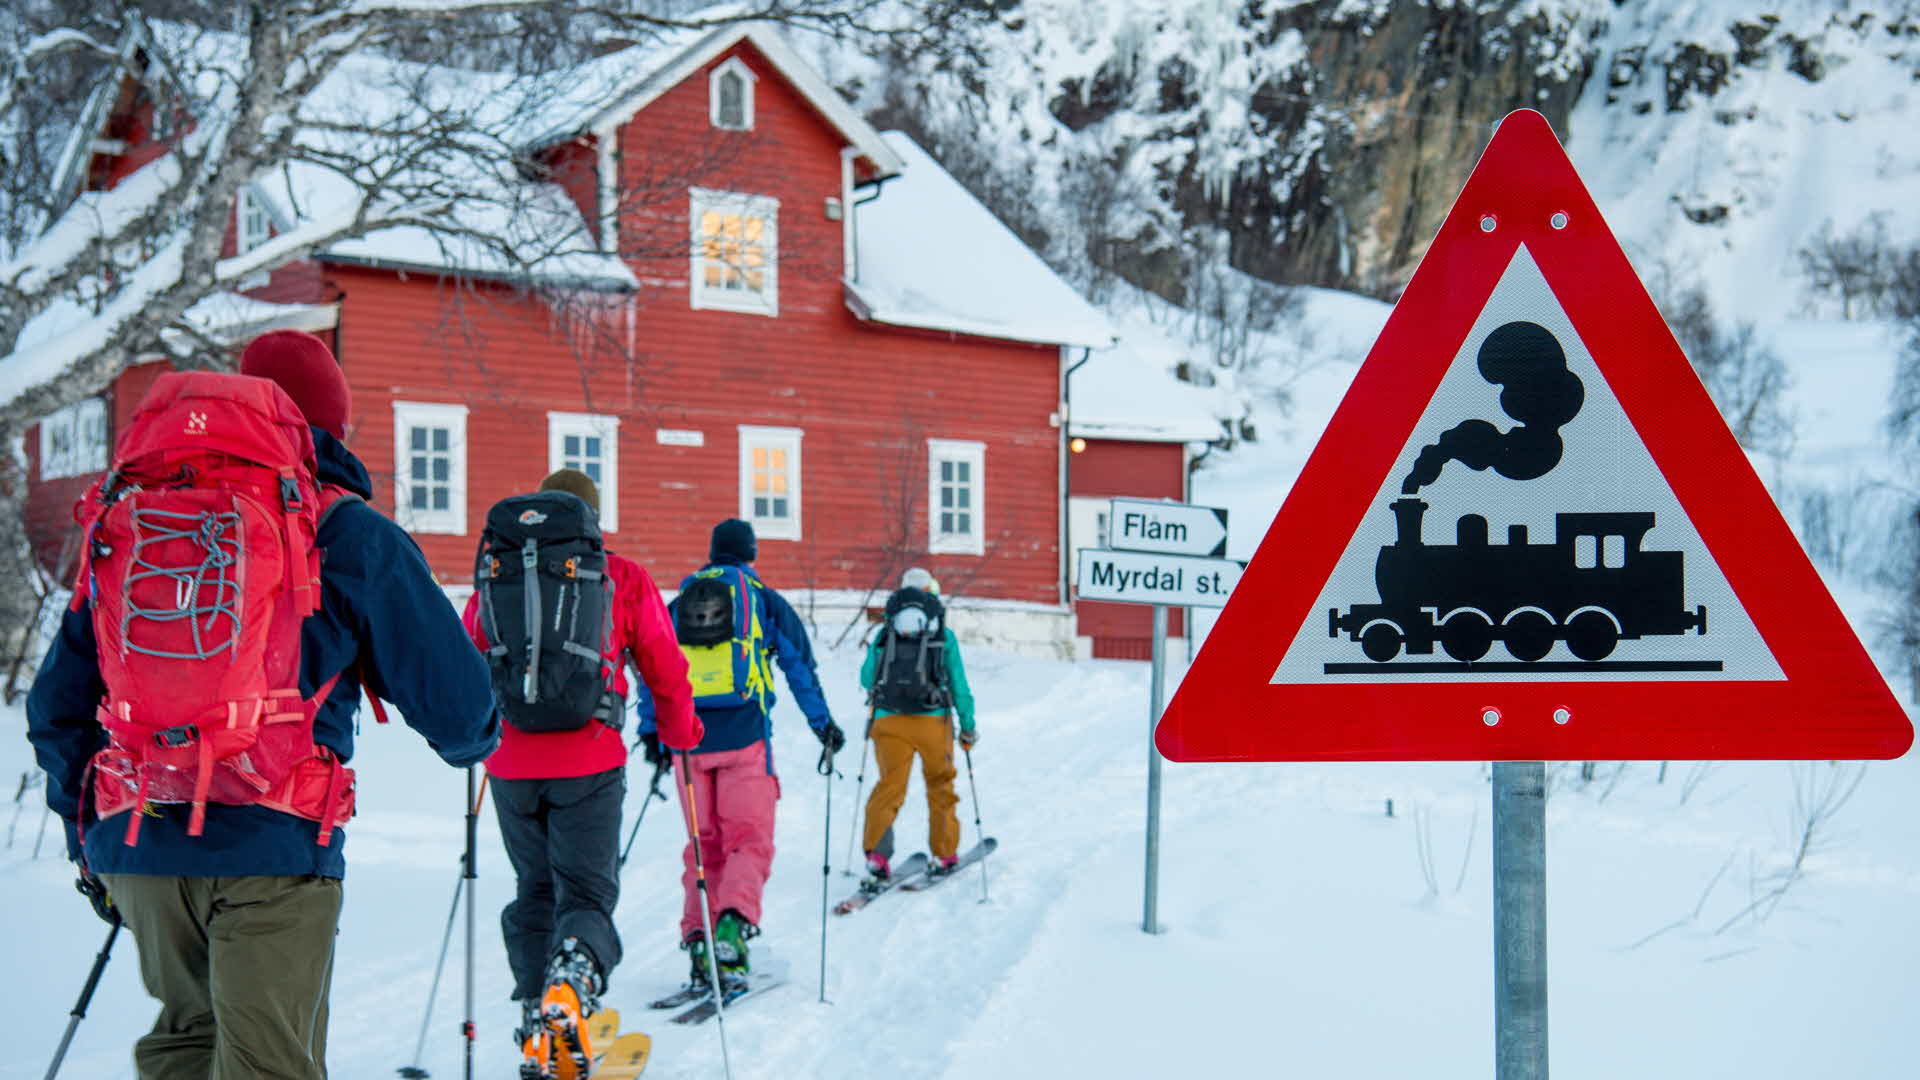 Four Randonnée skiers on their way towards red guest house at Vatnhalsen passing the flam railroad warning sign in winter